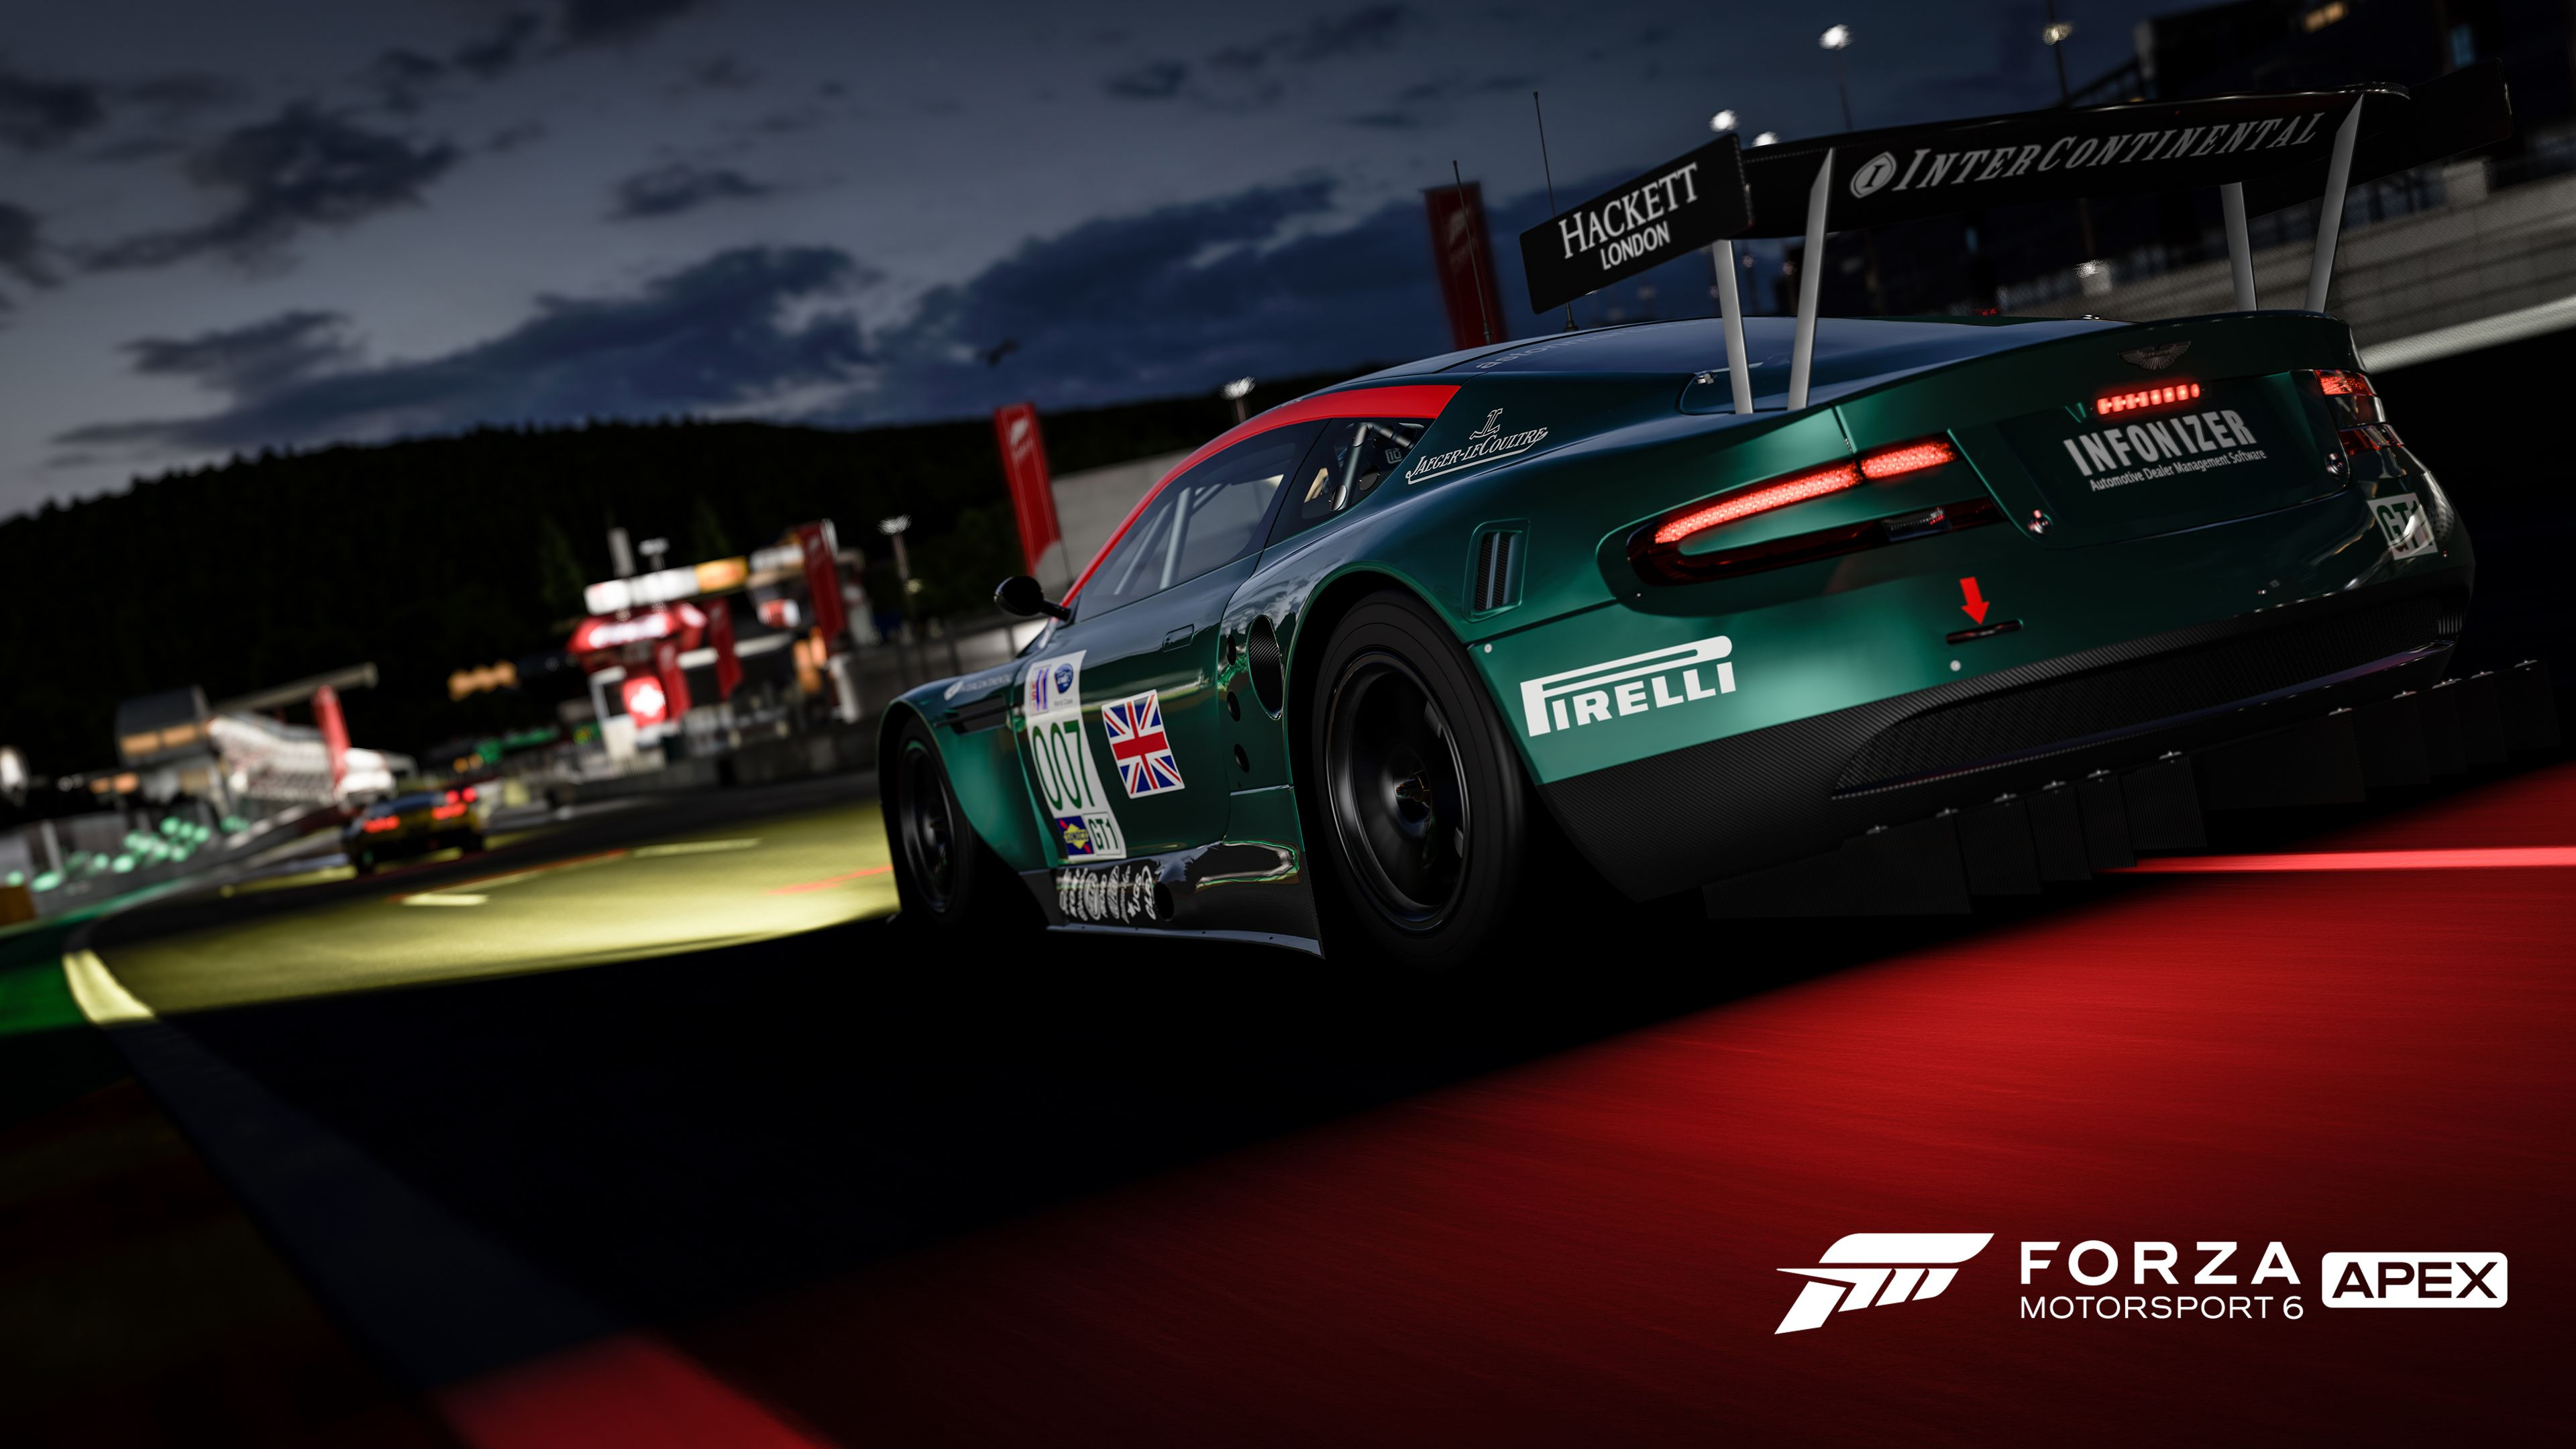 Forza Motorsport 7 Wallpapers Ultra Hd Gaming Backgrounds: 11 Forza Motorsport 6: Apex HD Wallpapers